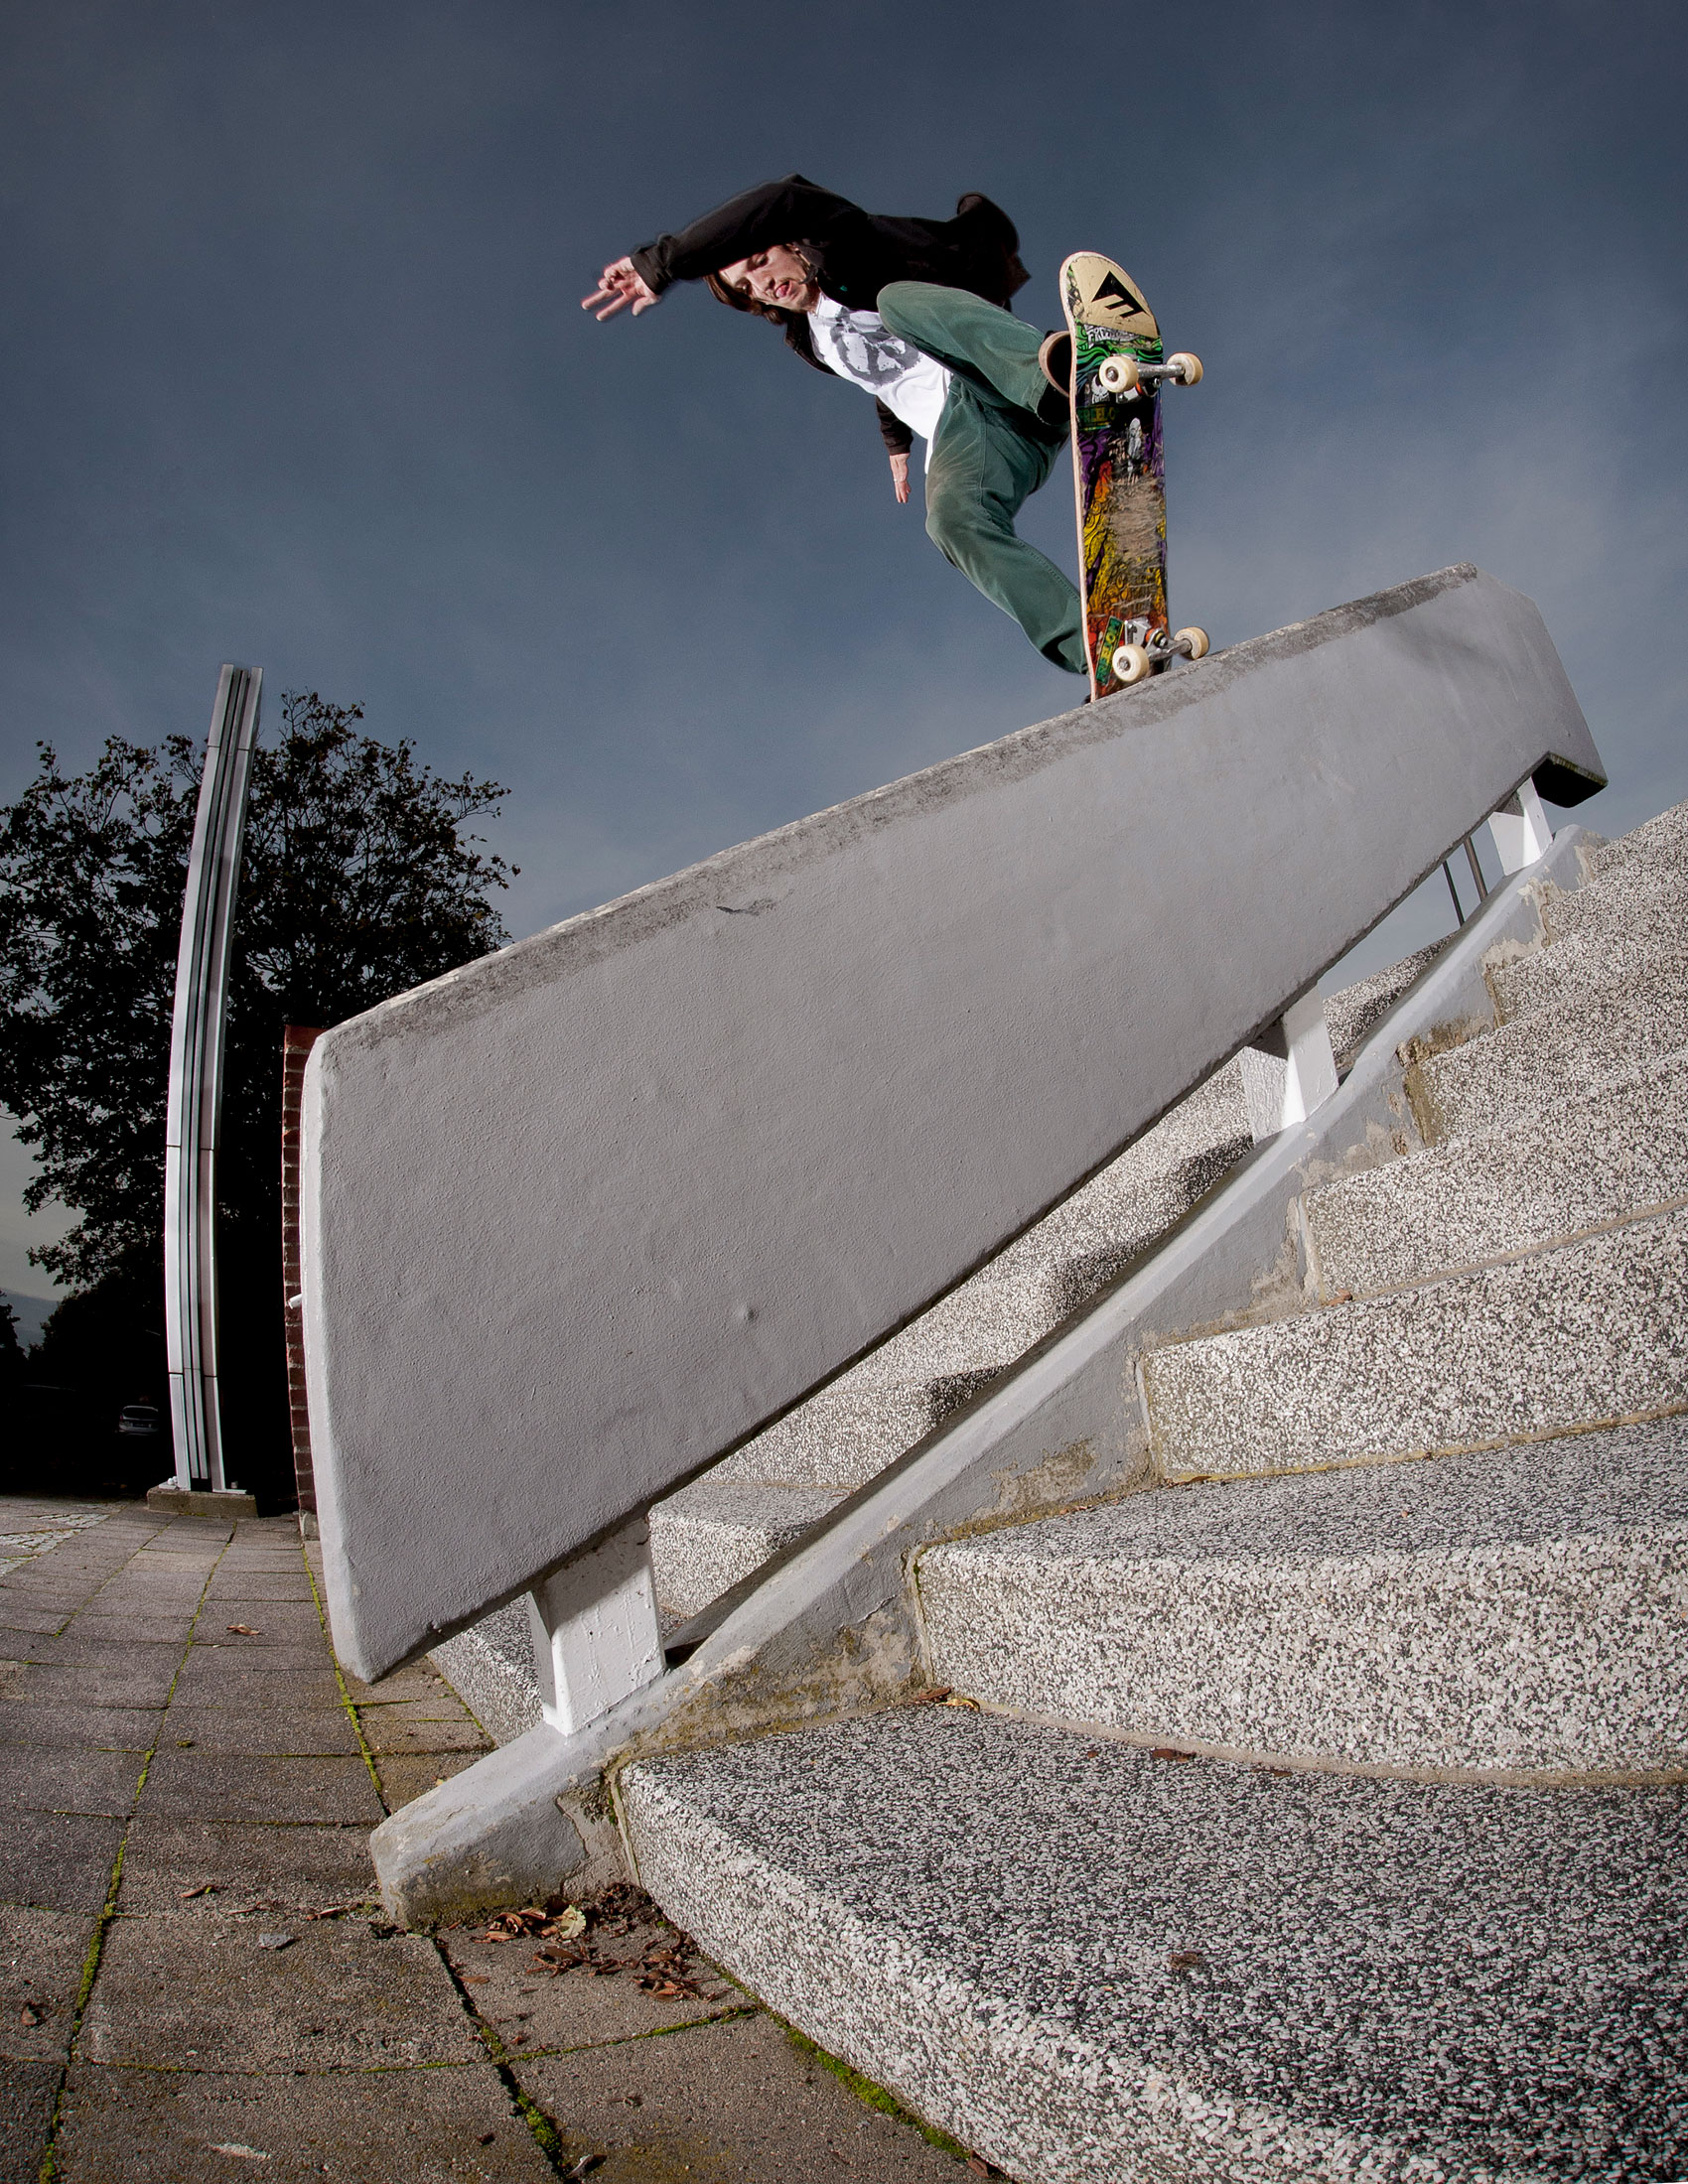 Andre Gerlich, Skatefoto, Willi Nothers, Editorial, Levis